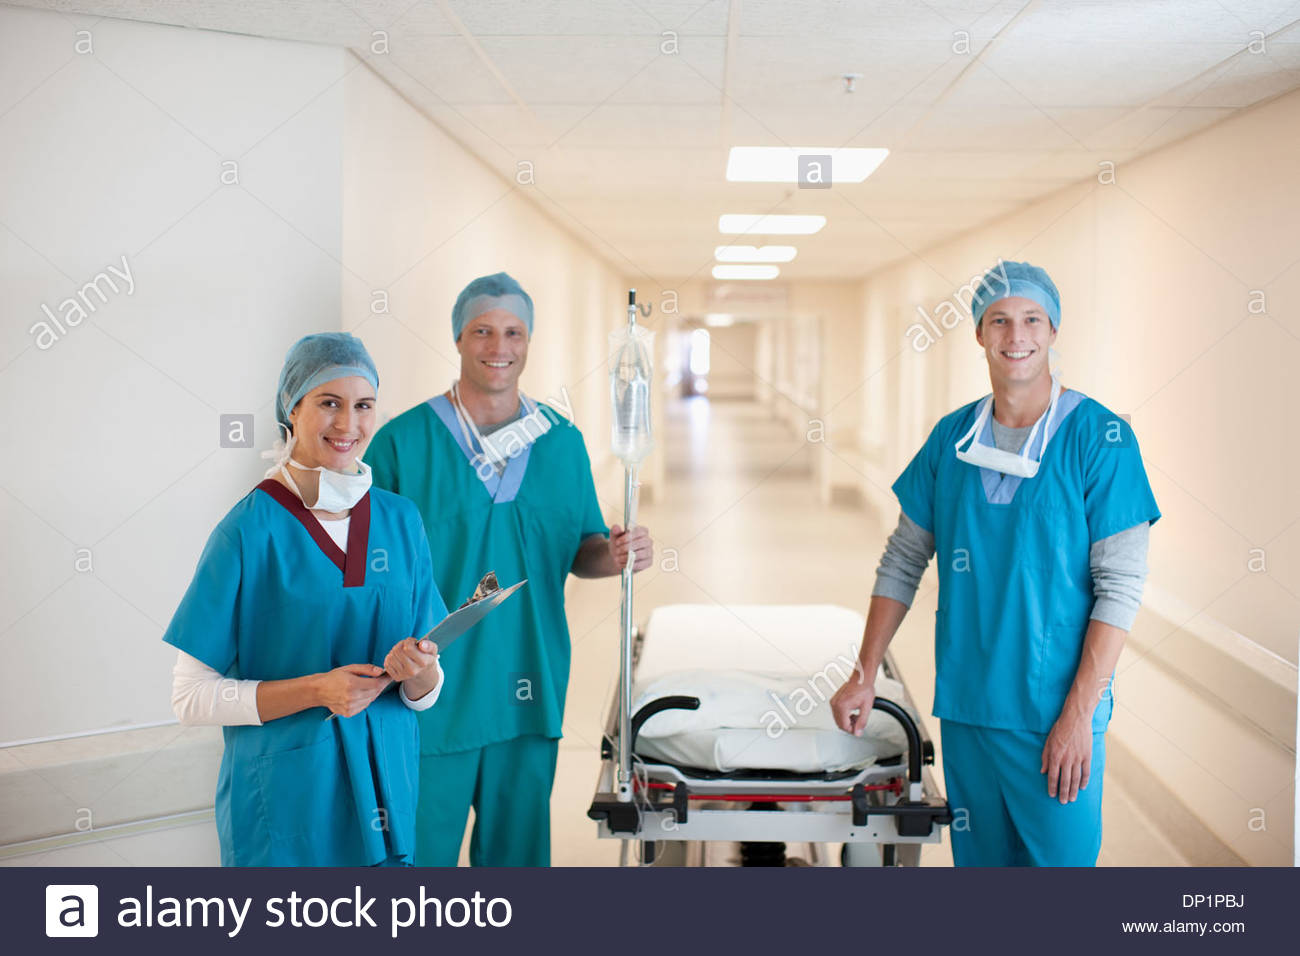 Surgeons in hospital with gurney - Stock Image